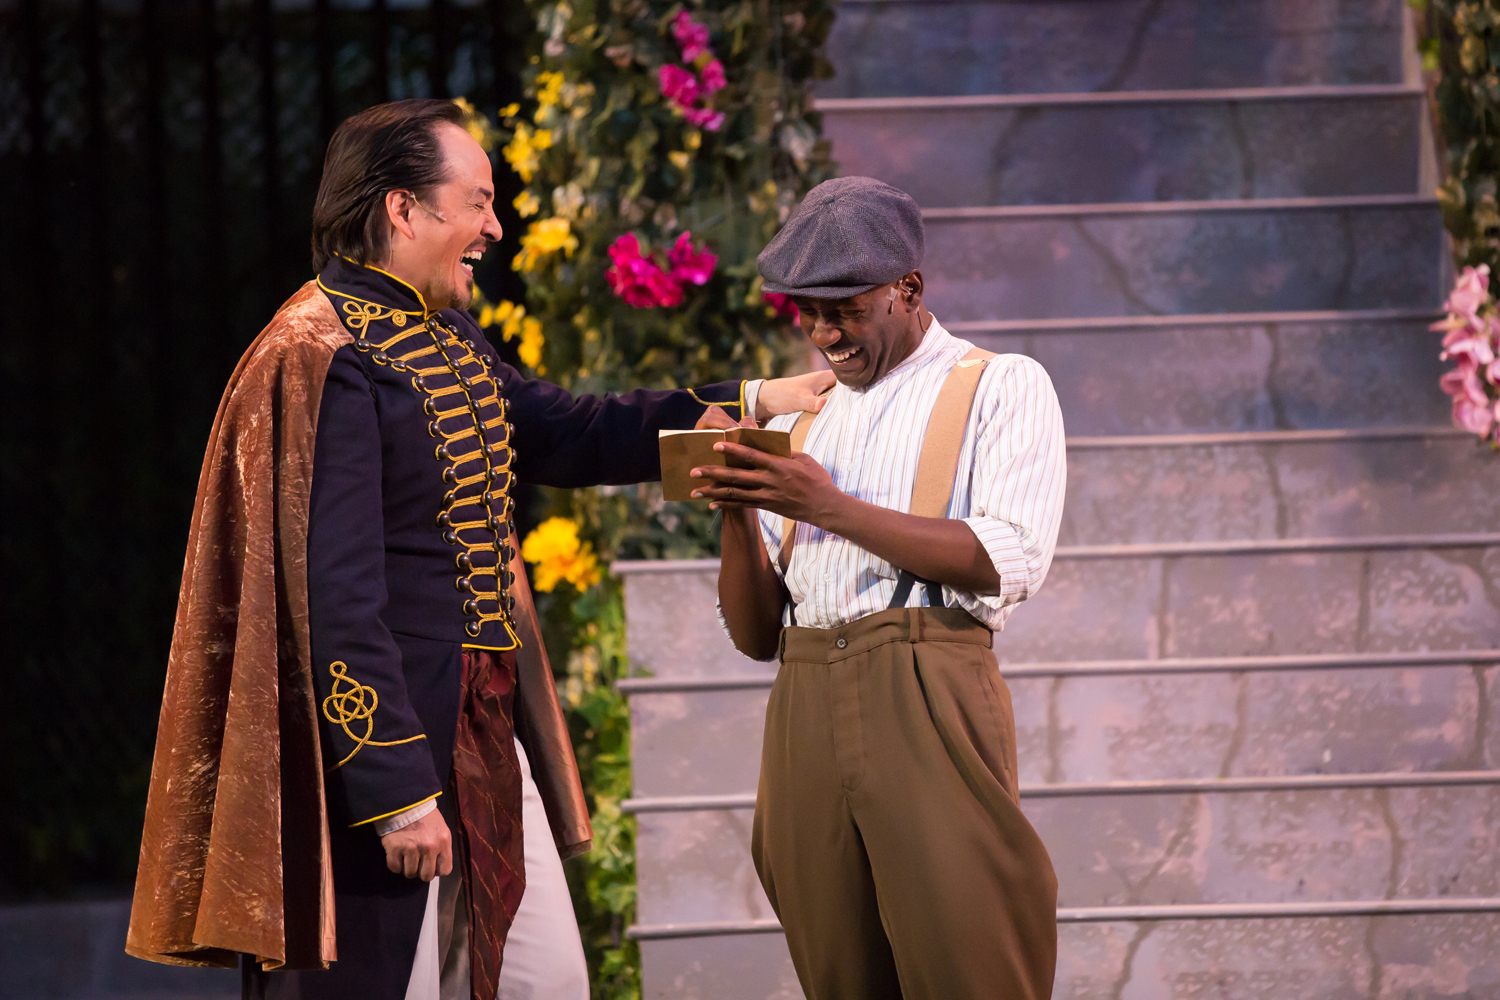 Don Armado and Moth laught together in the Colorado Shakespeare Festival's Love's Labor's Lost.